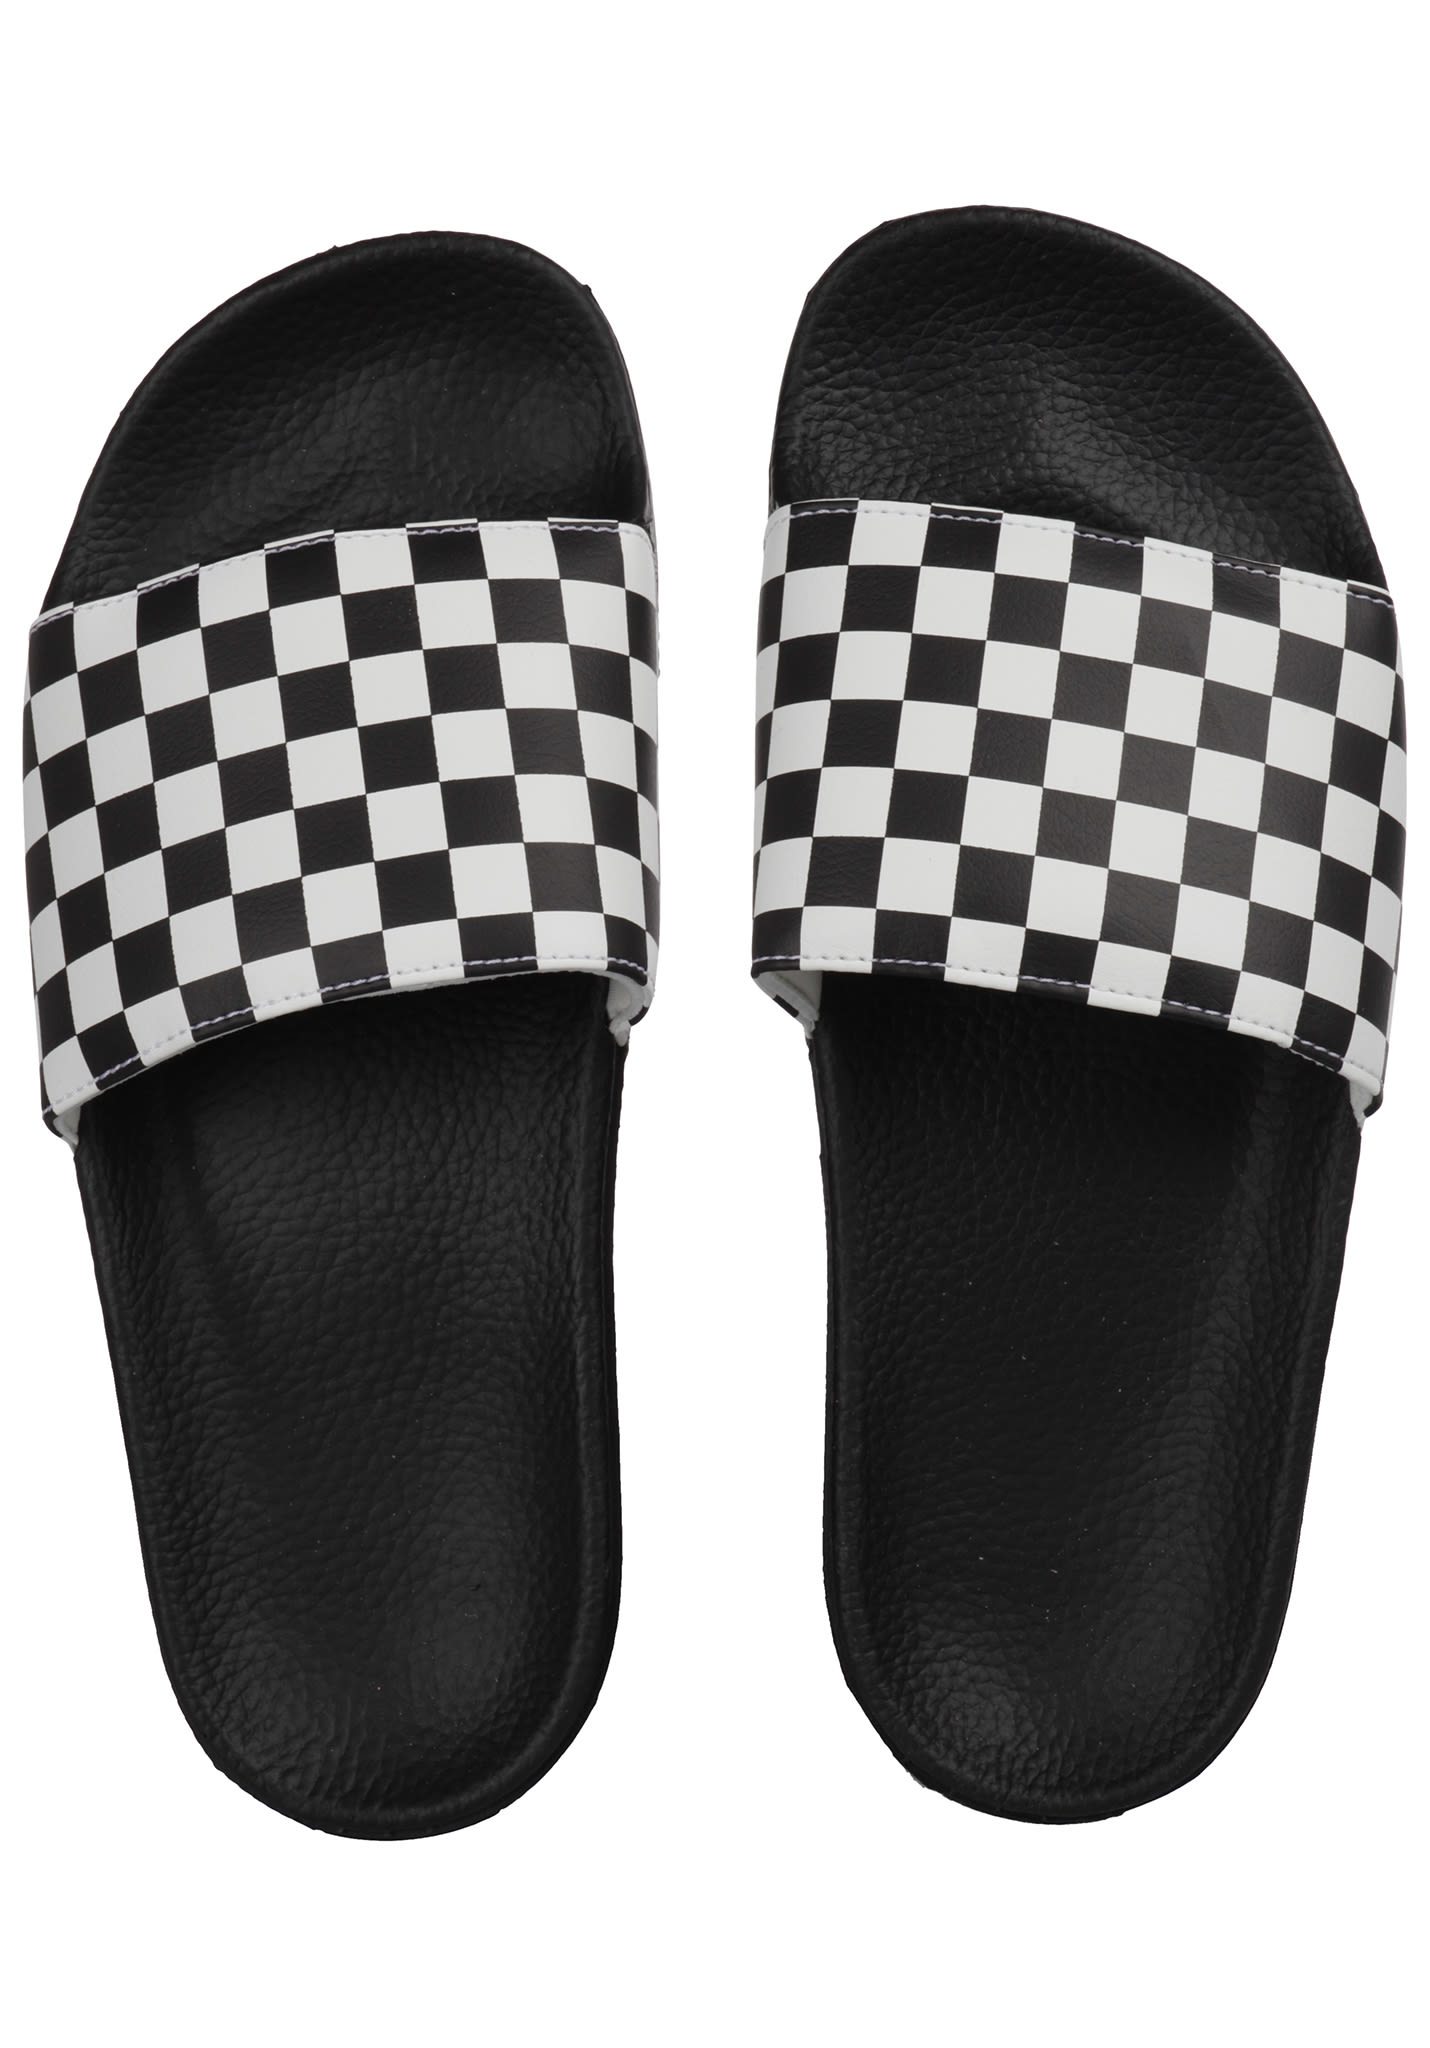 Vans Slide-On - Sandals for Men - Black - Planet Sports 4274cf3799d